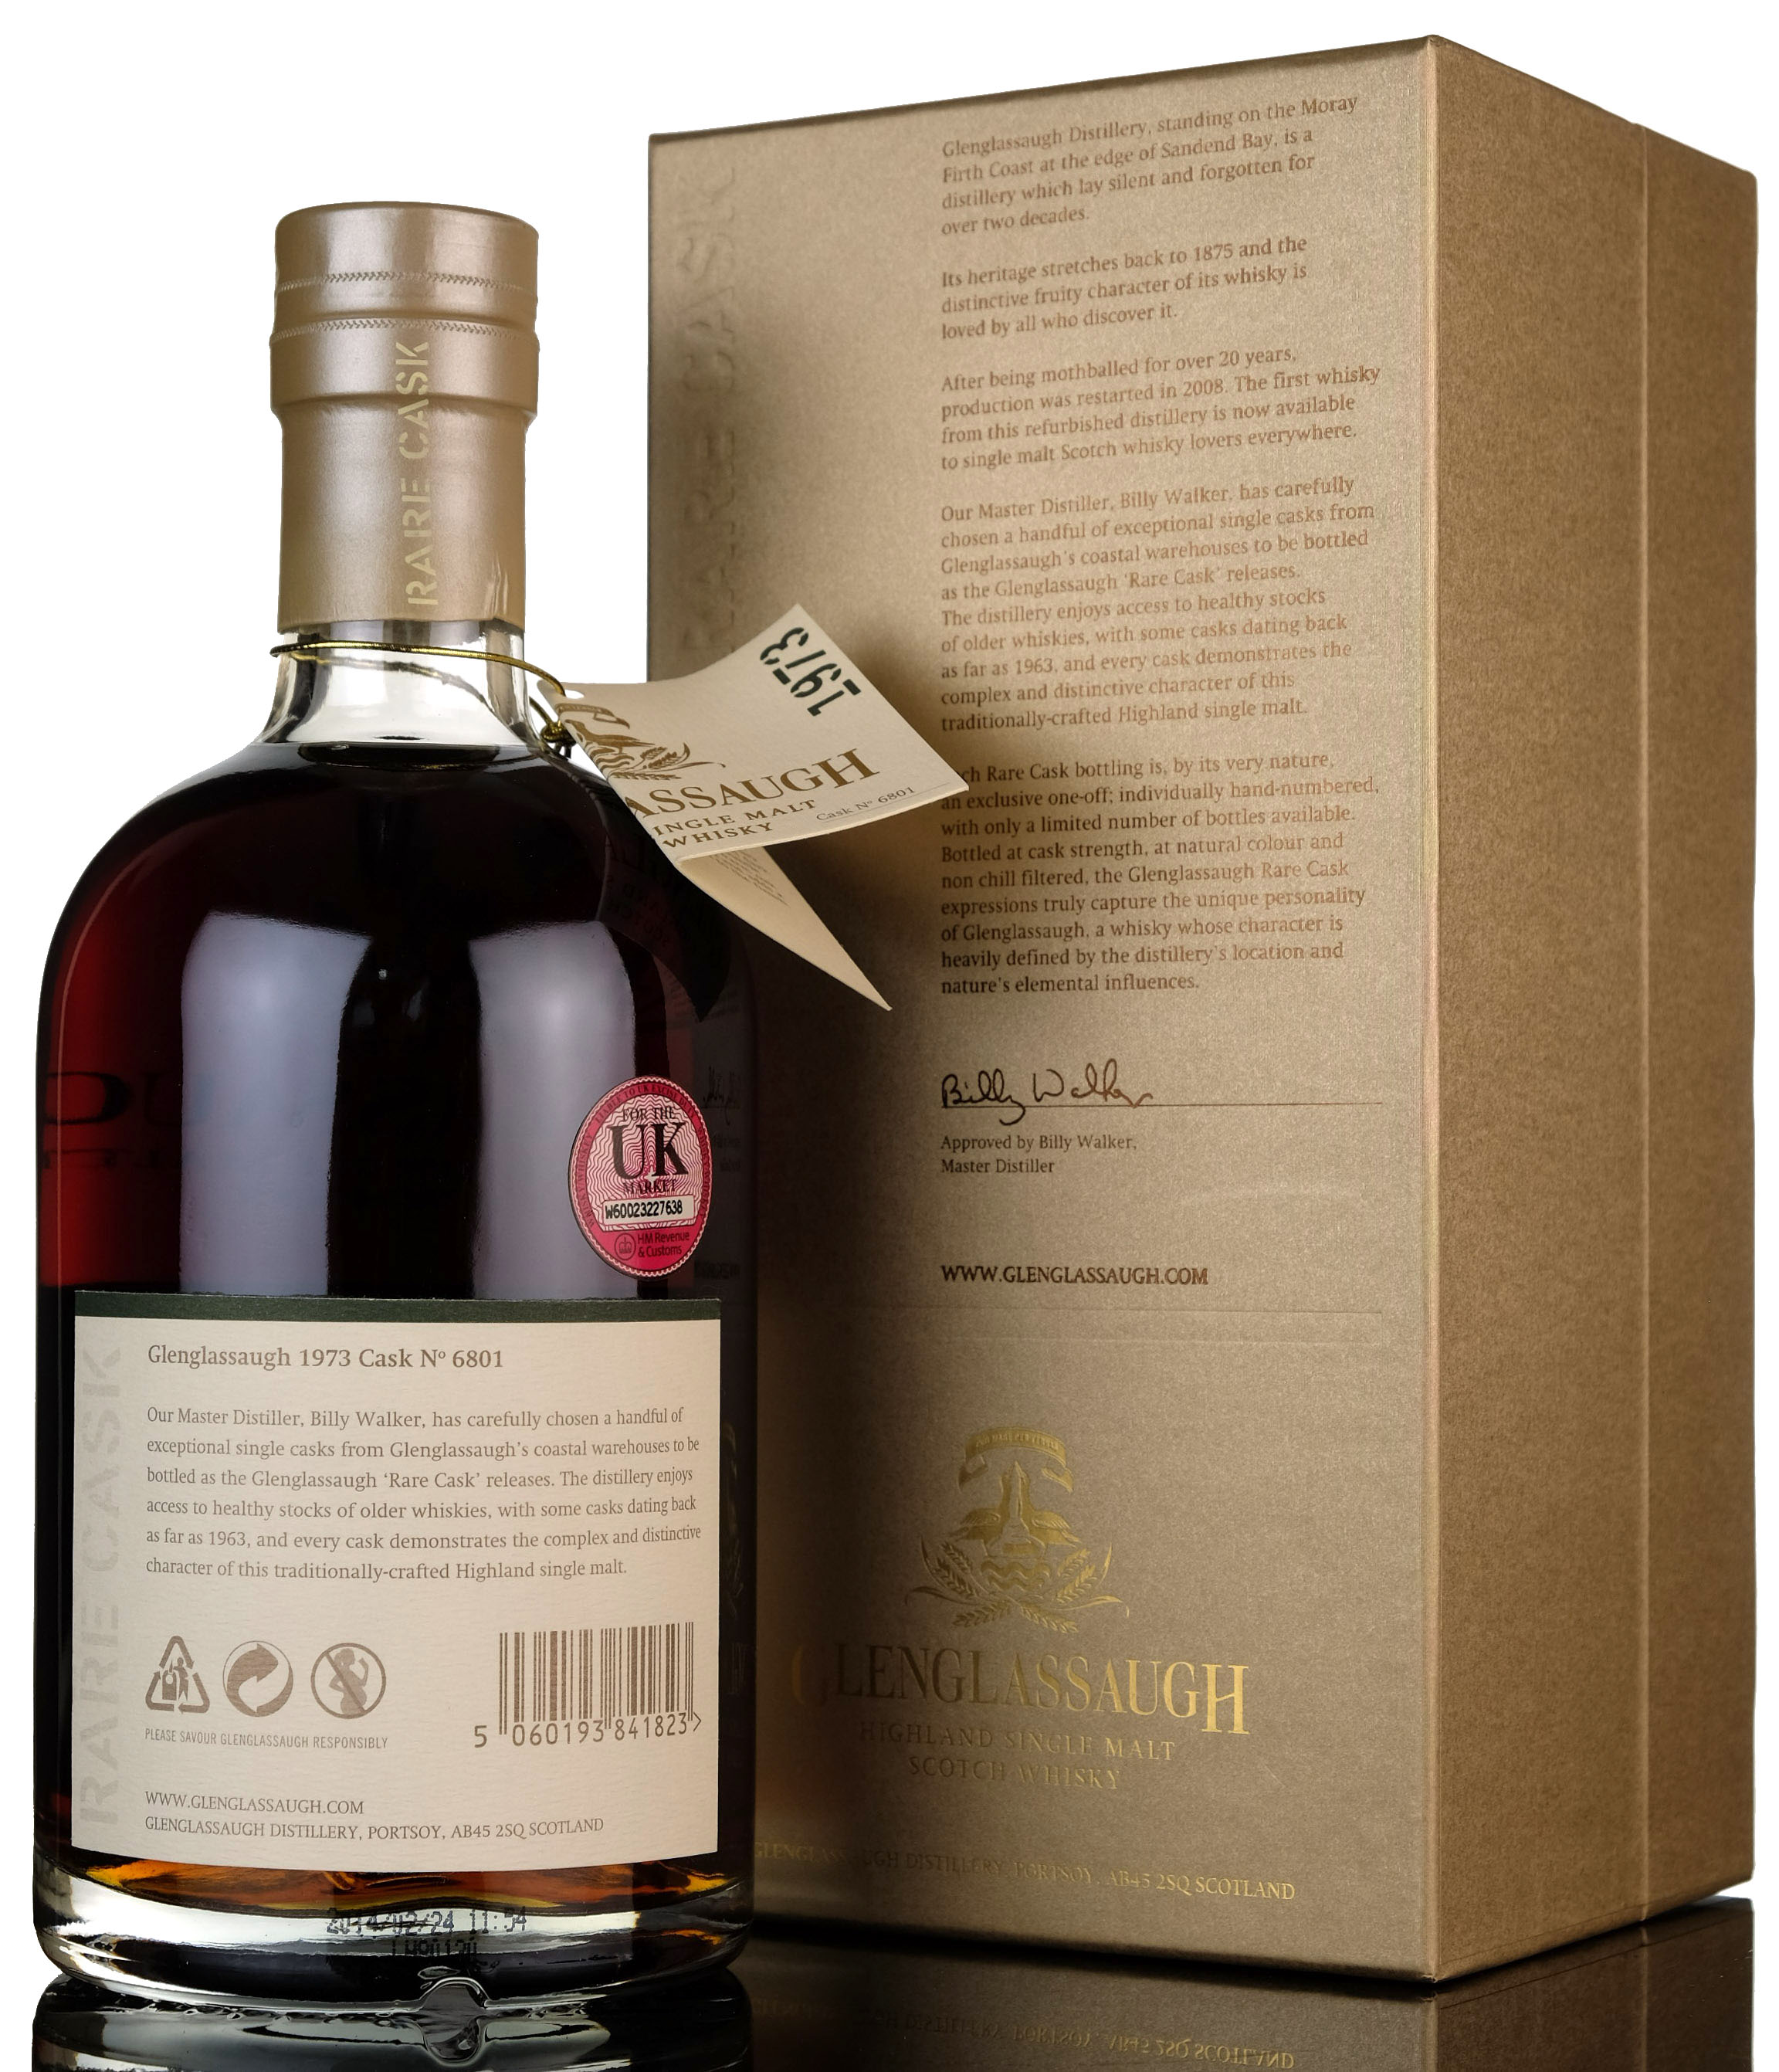 glenglassaugh 1973-2014 - 40 year old - single cask 6801